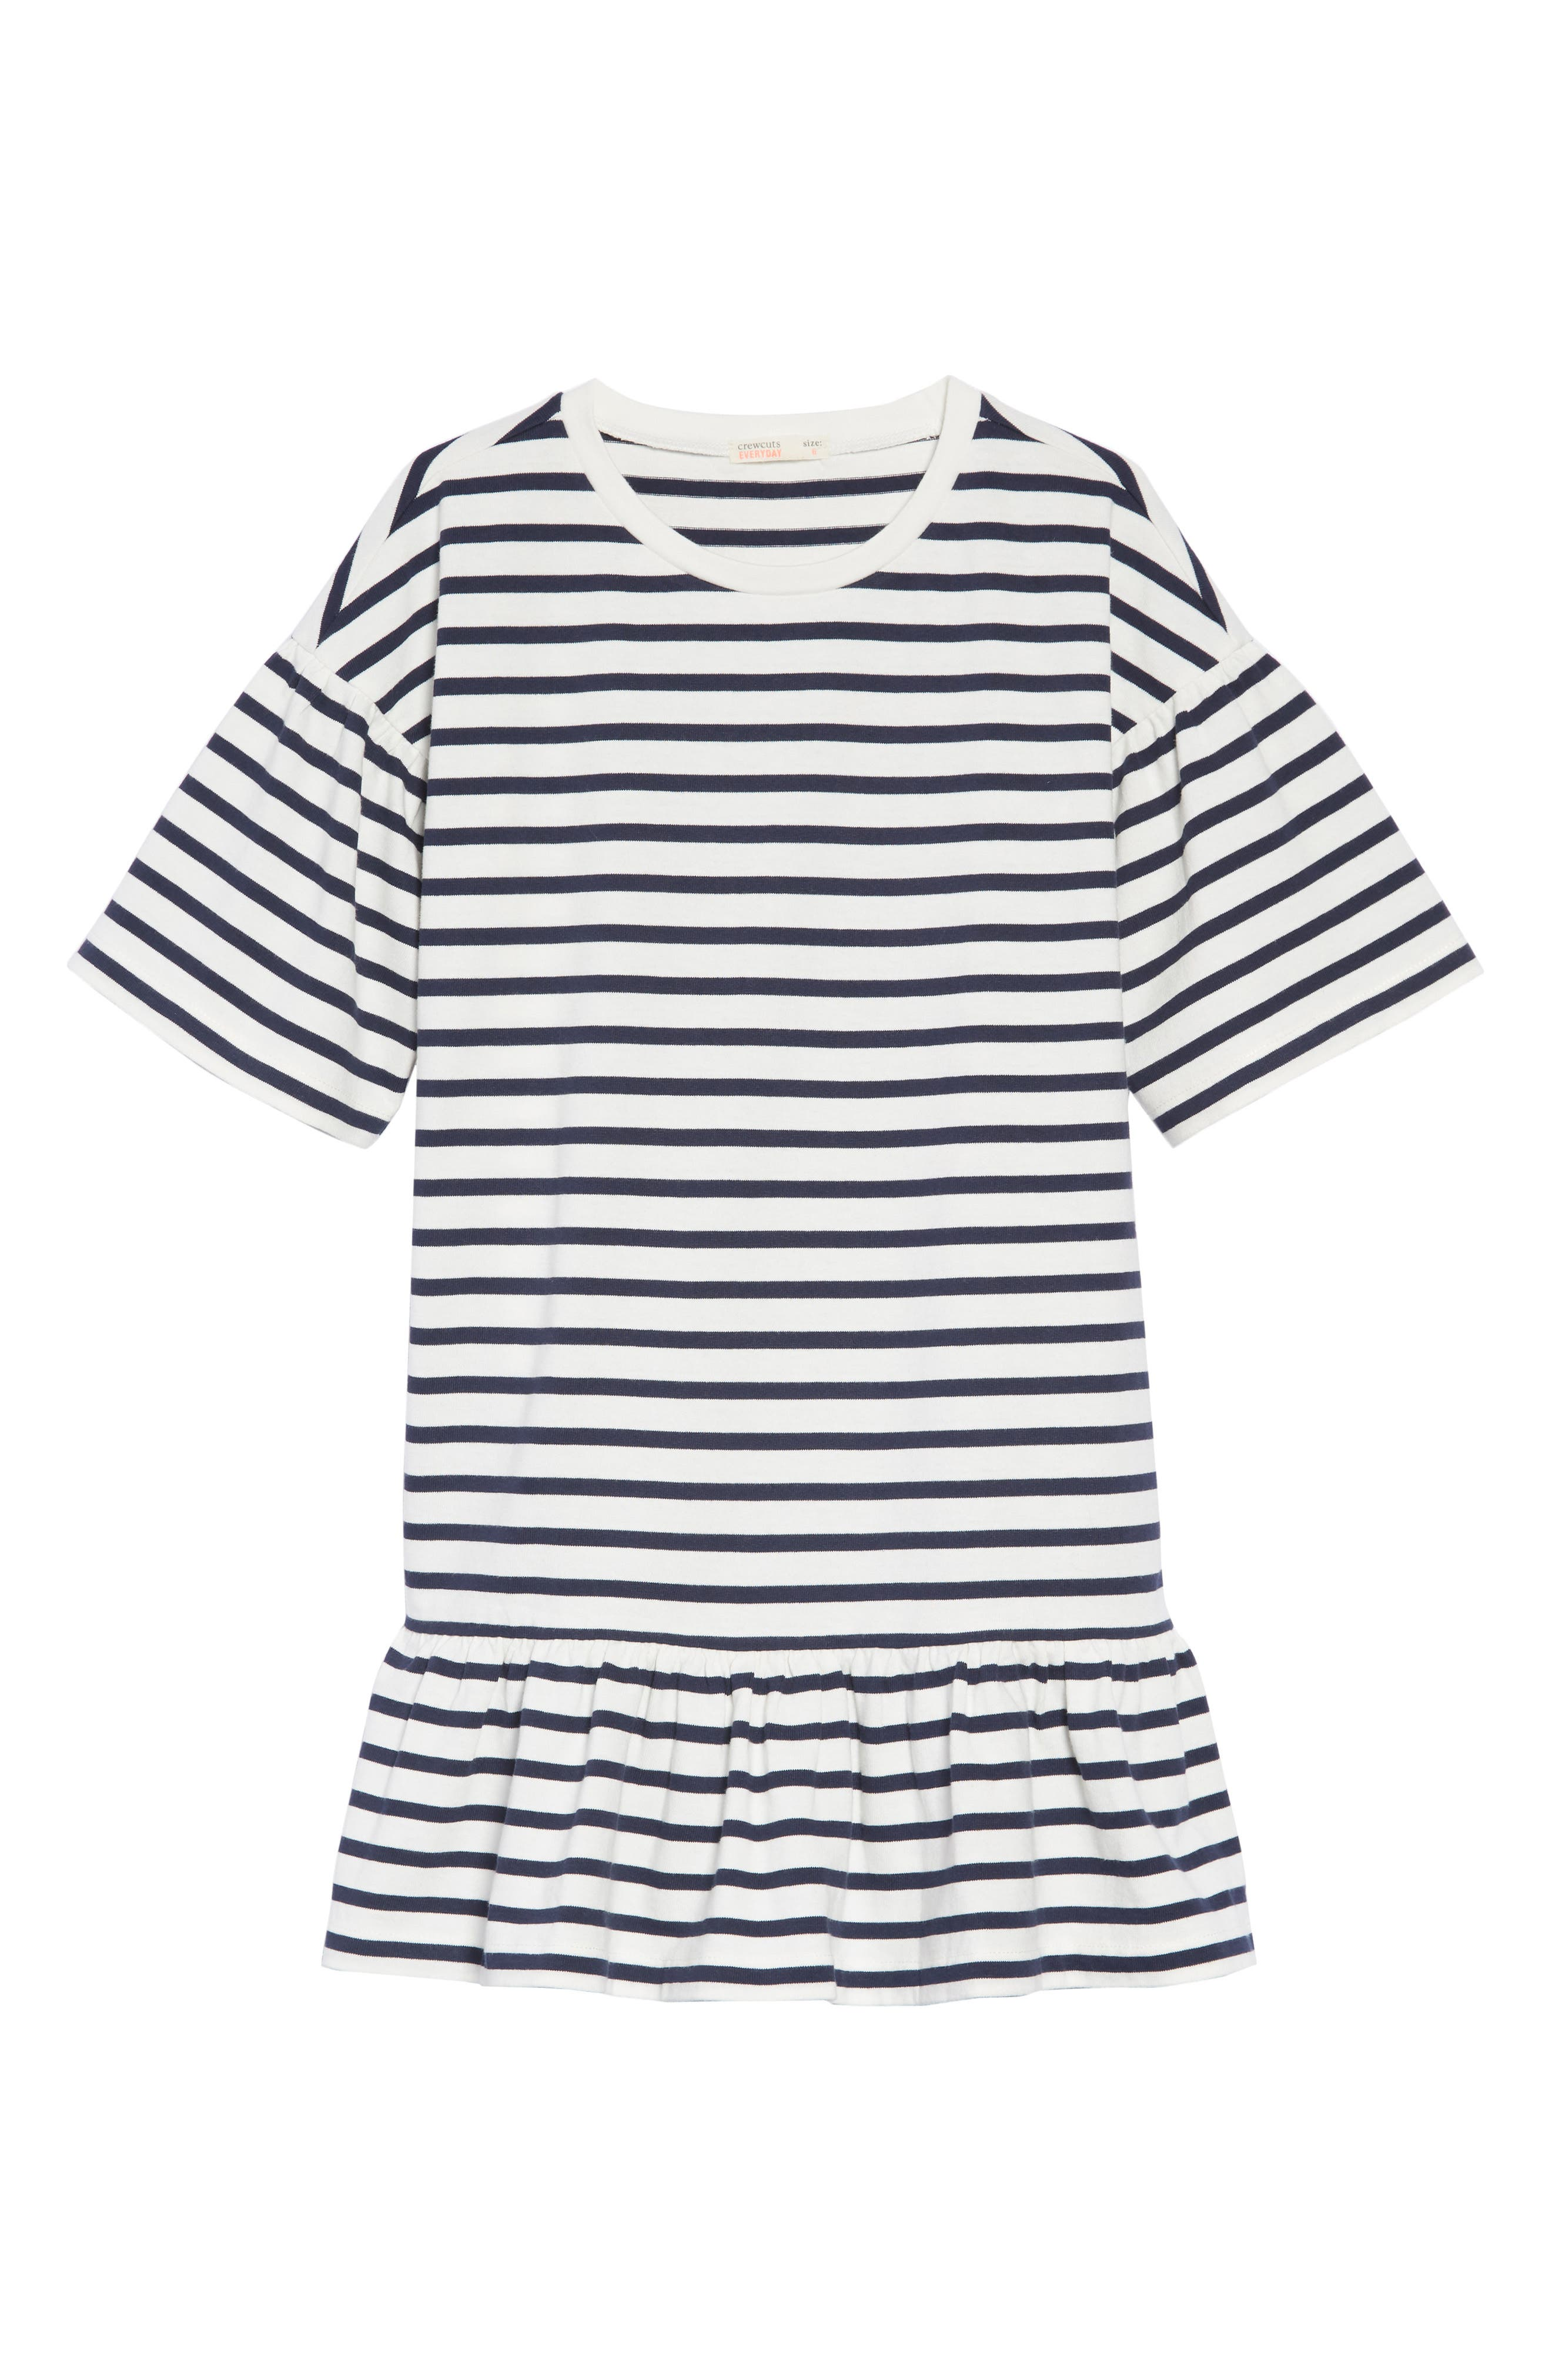 Drop Waist Dress,                         Main,                         color, NAVY AND WHITE STRIPE